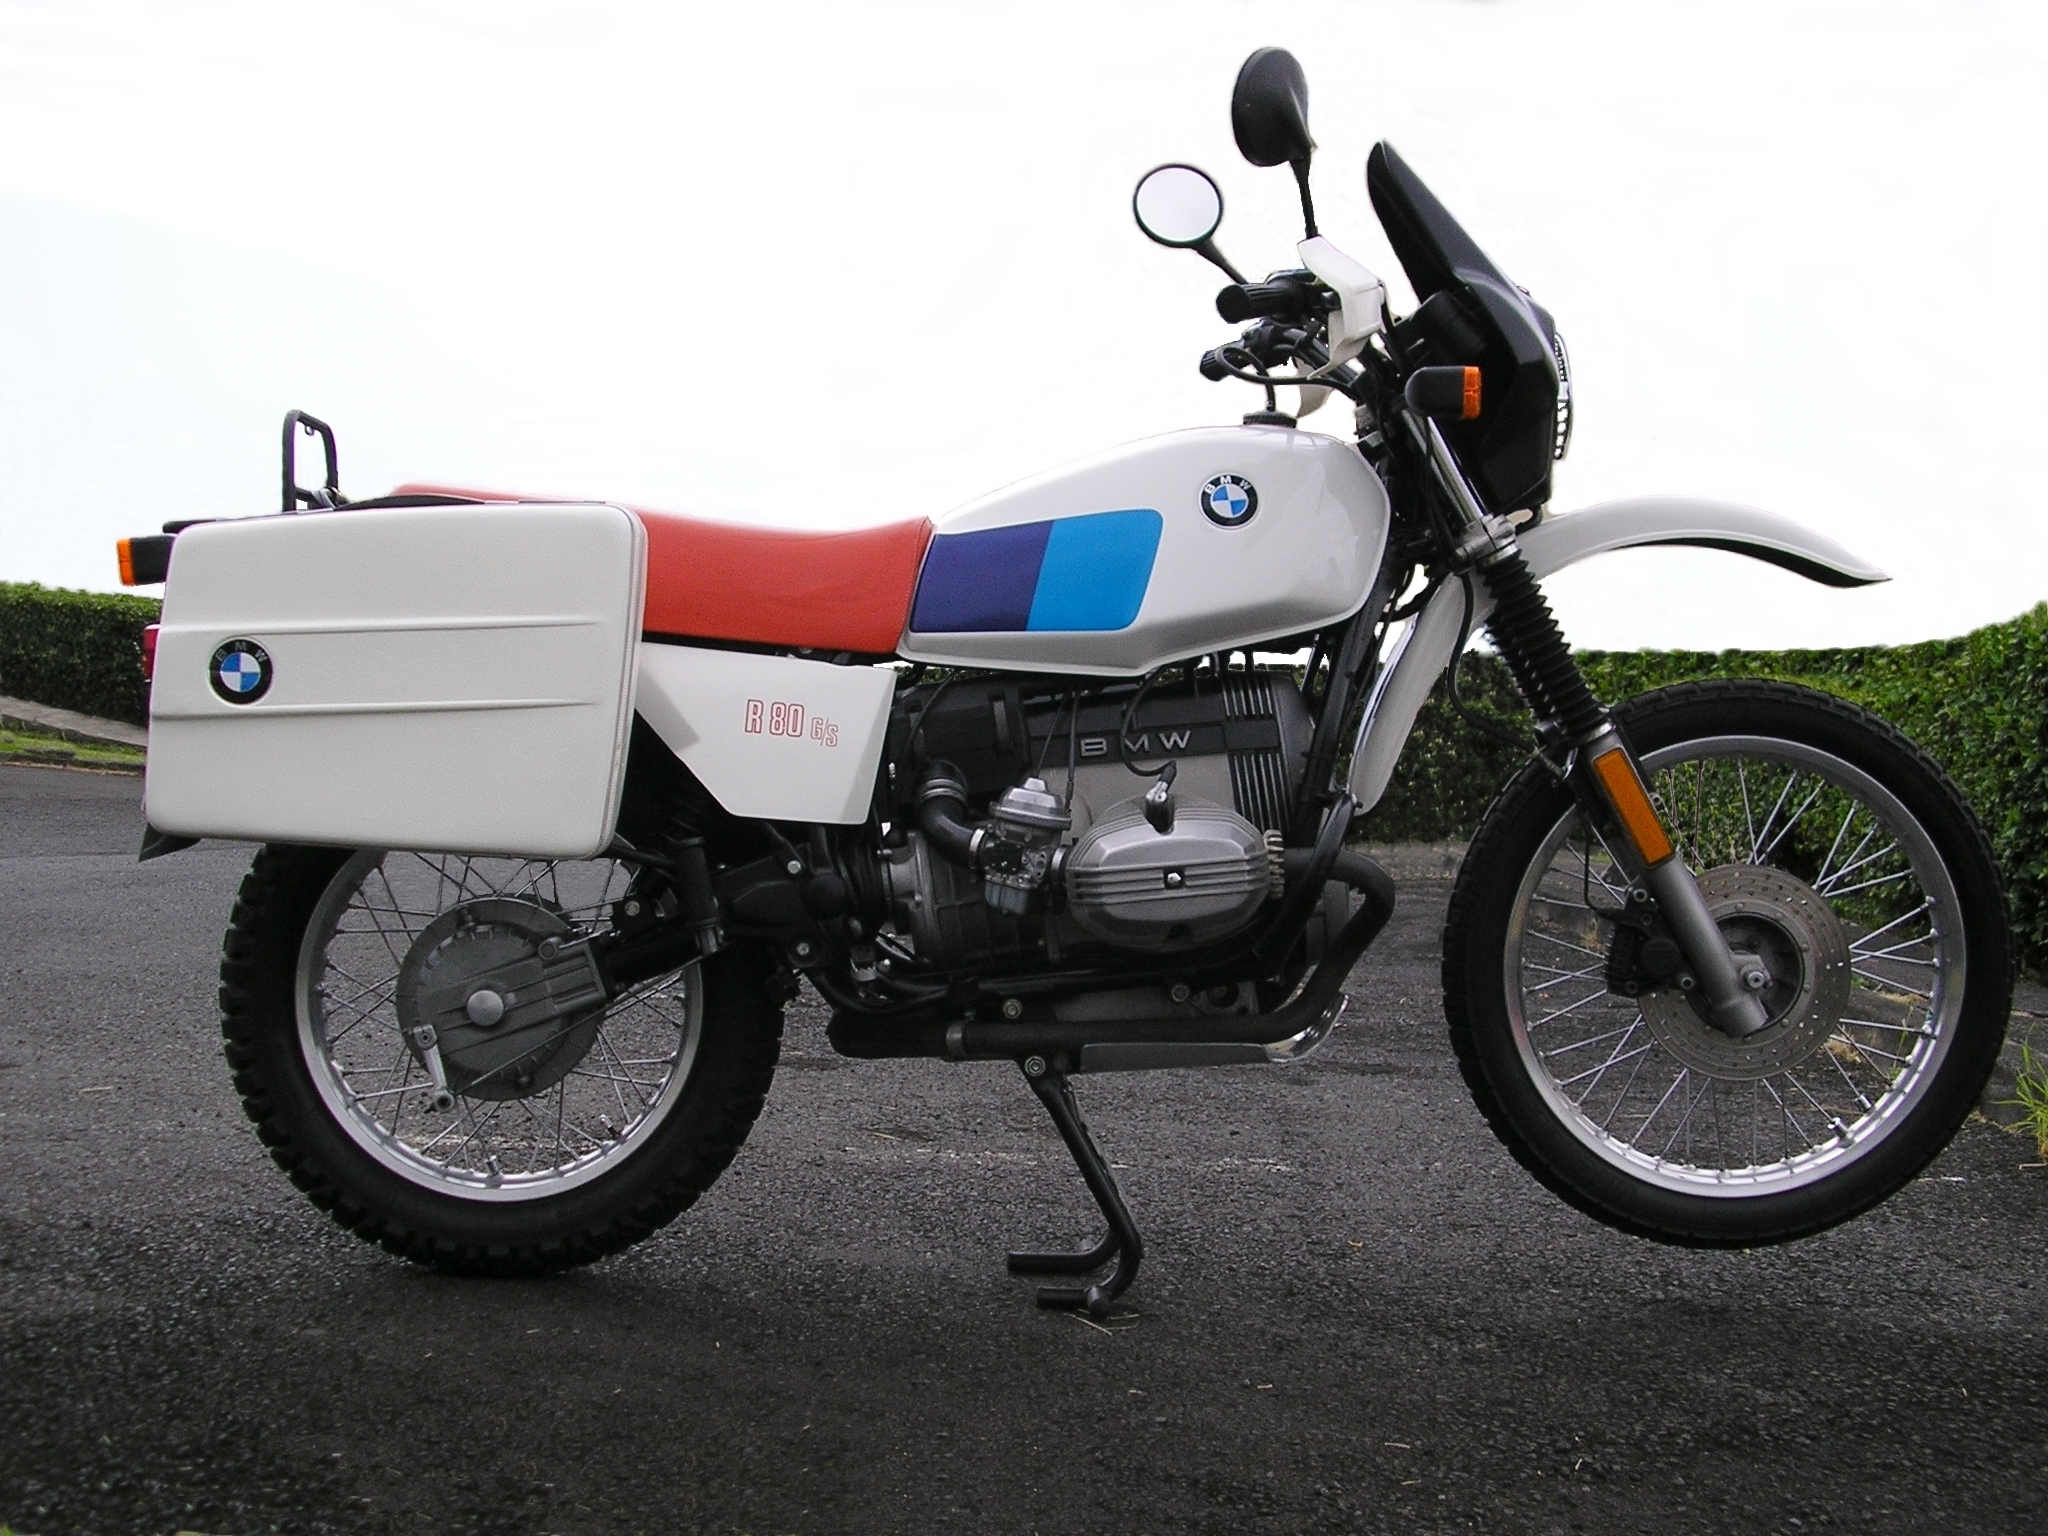 BMW R80GS 1989 images #6009